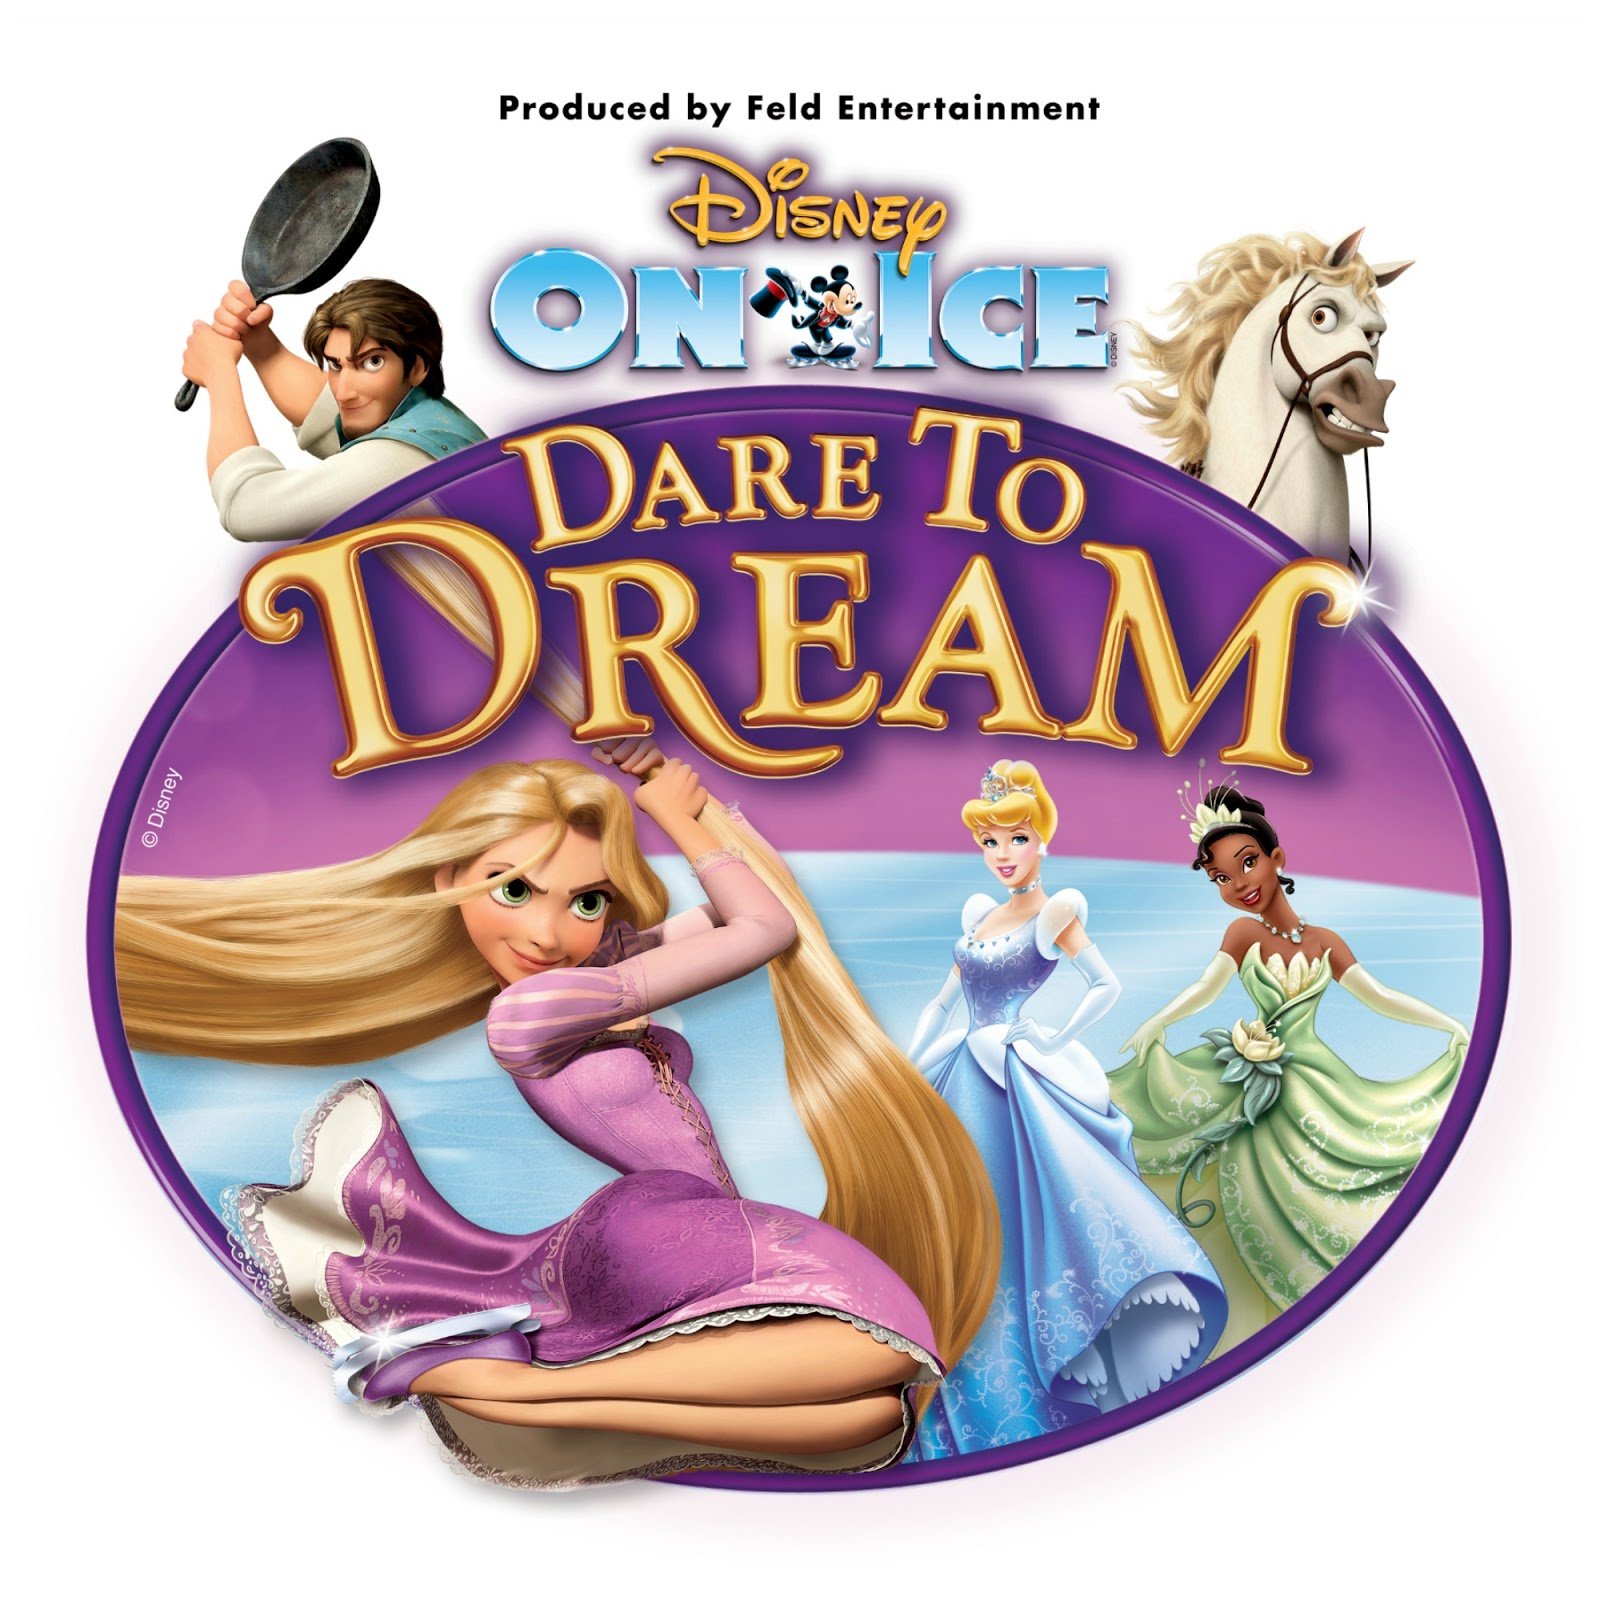 http://www.sixlittlehearts.com/2015/04/disney-on-ice-presents-dare-to-dream.html